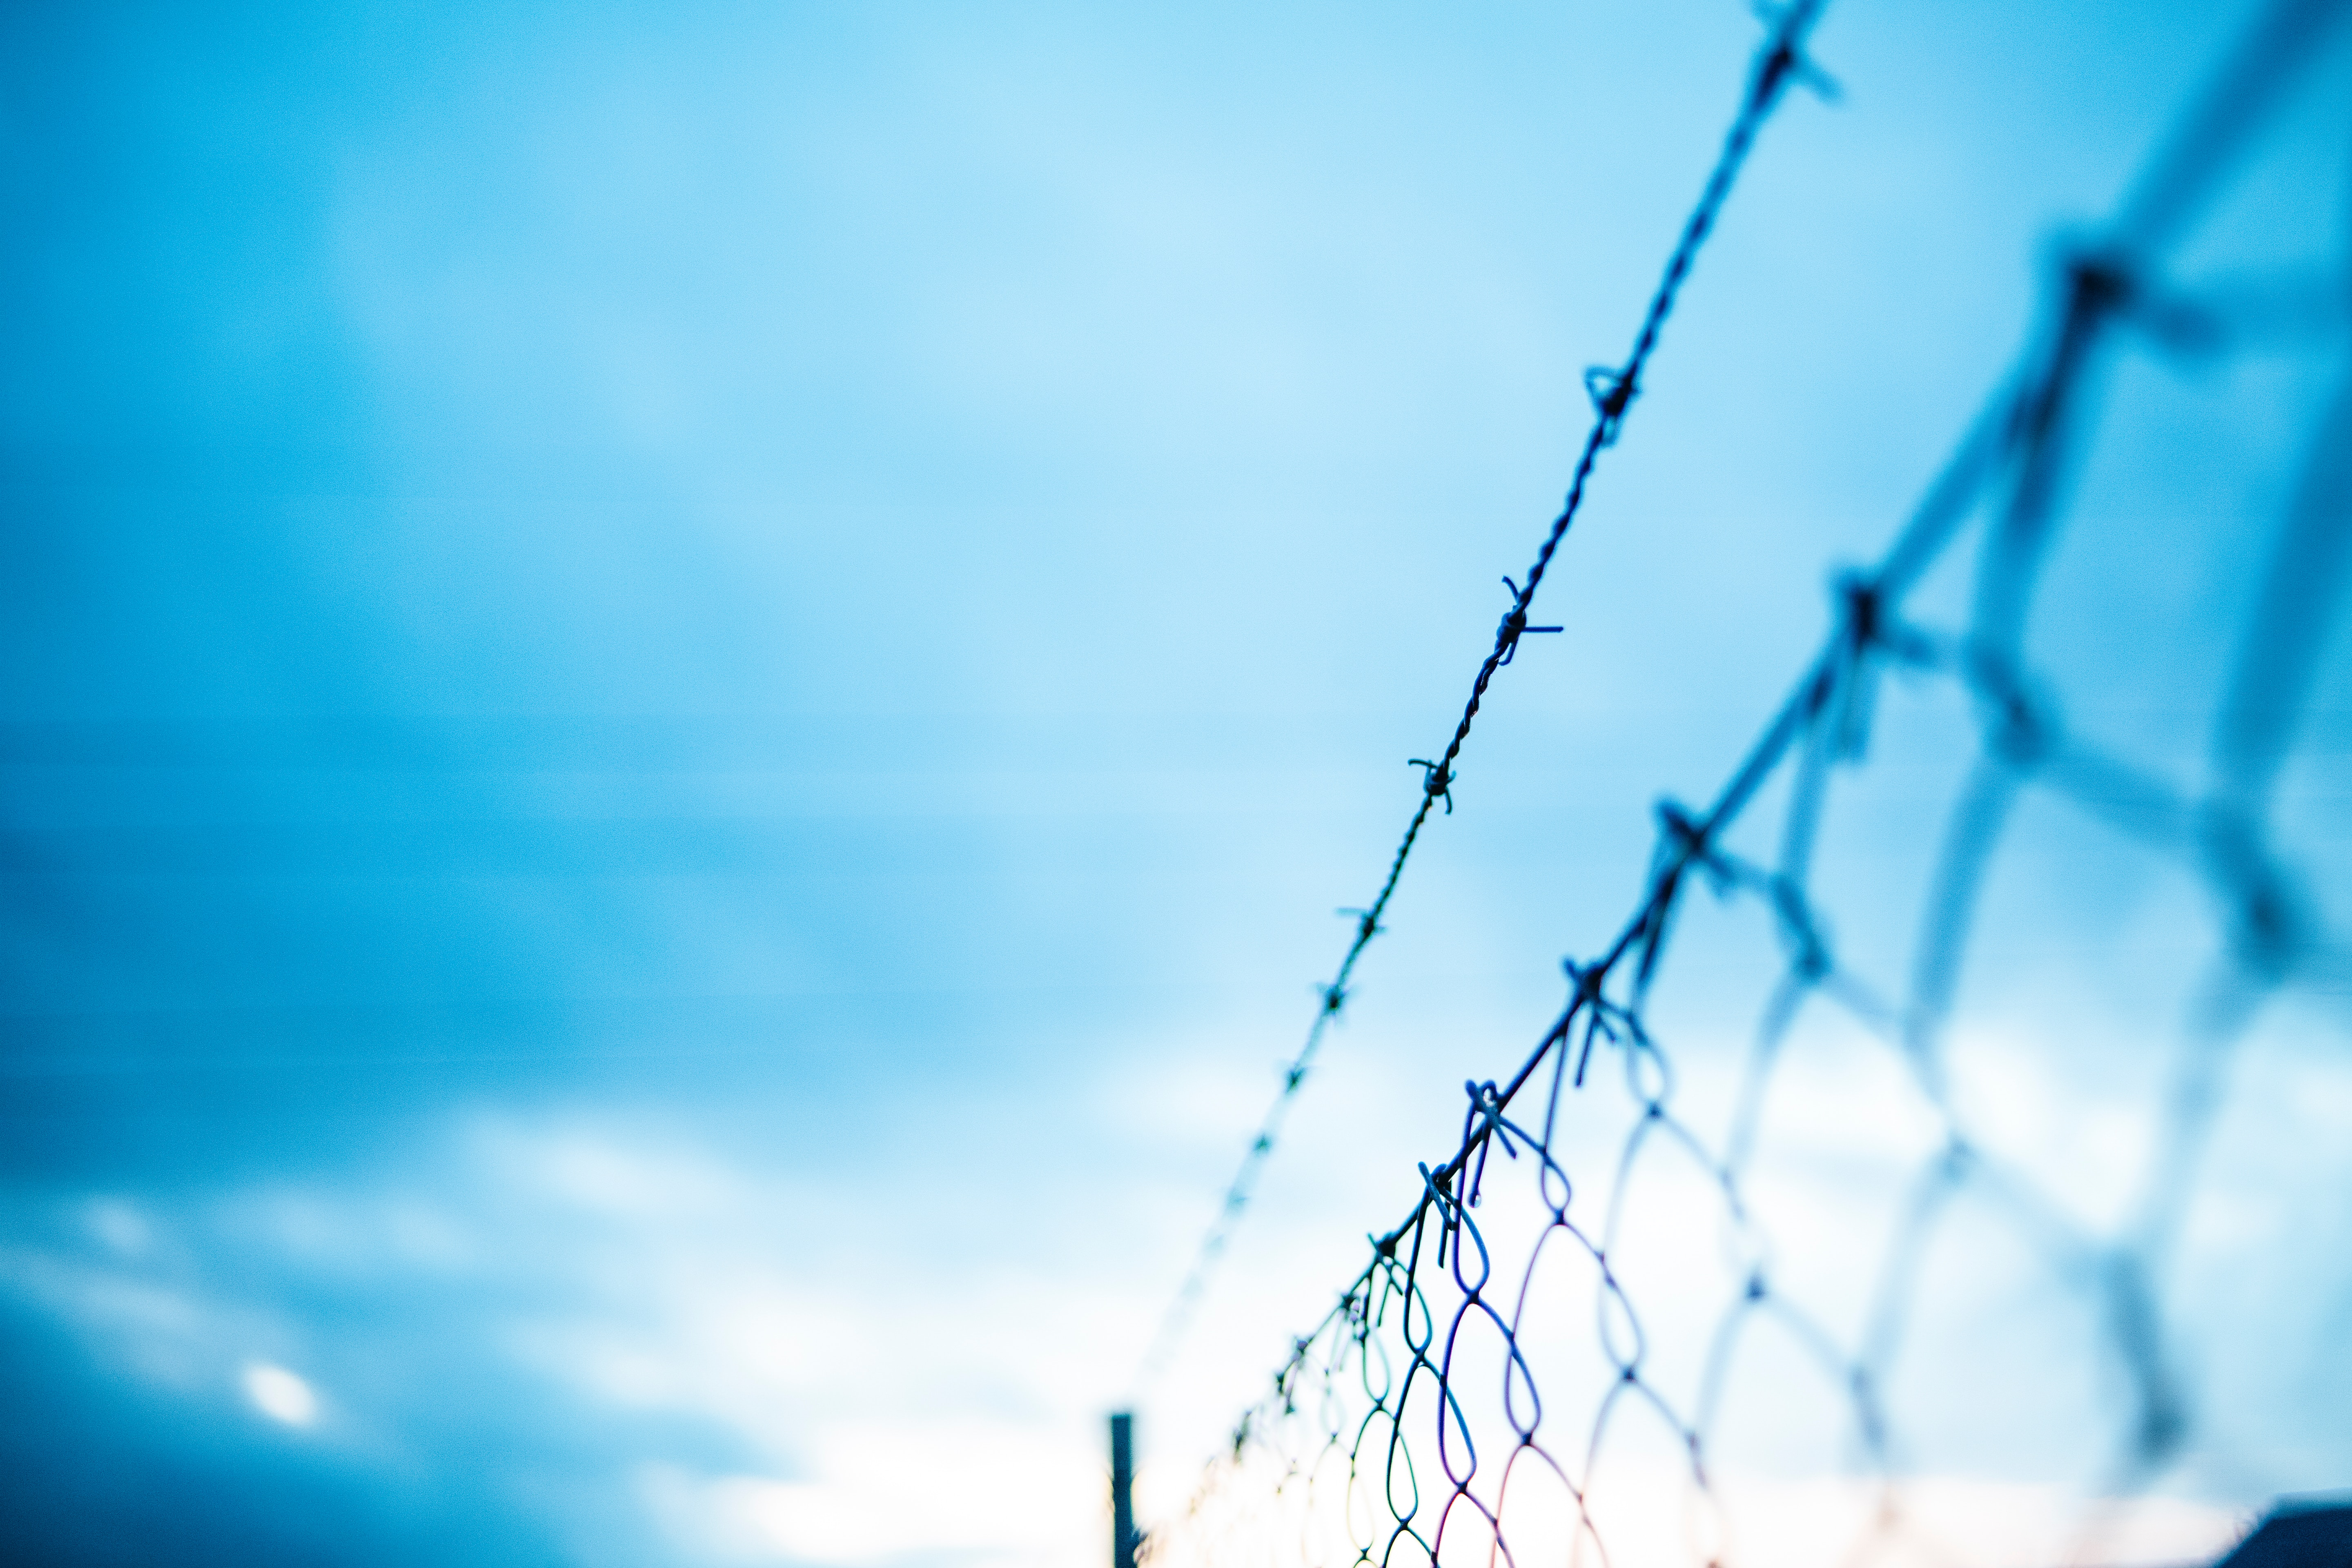 A barbed wire fence set against a cloudy sky.